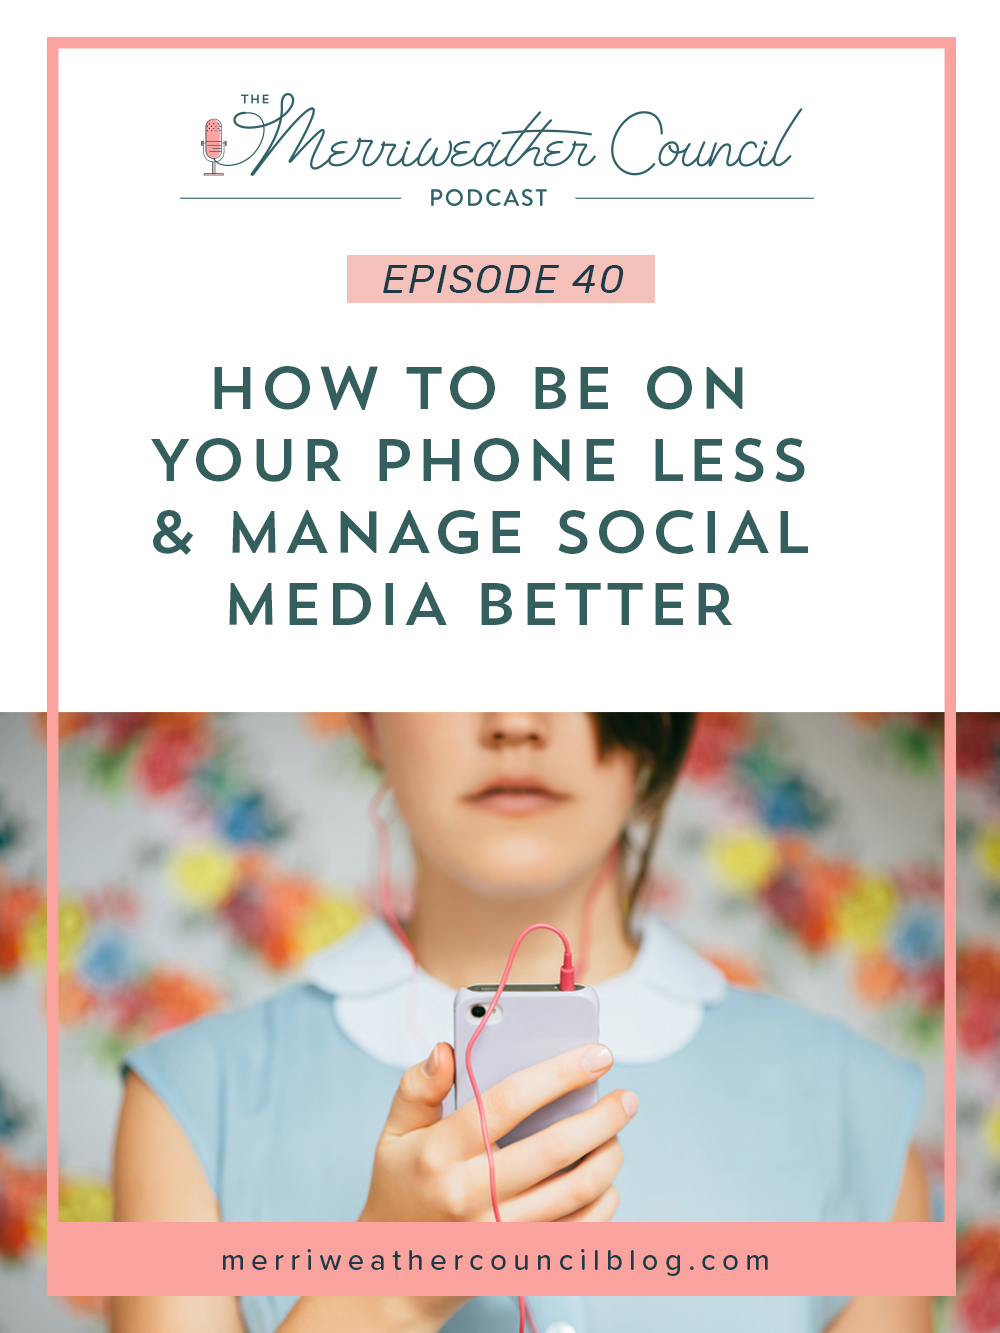 Episode 40: How to Be on Your Phone Less / Manage Social Media Better | The Merriweather Council Podcast